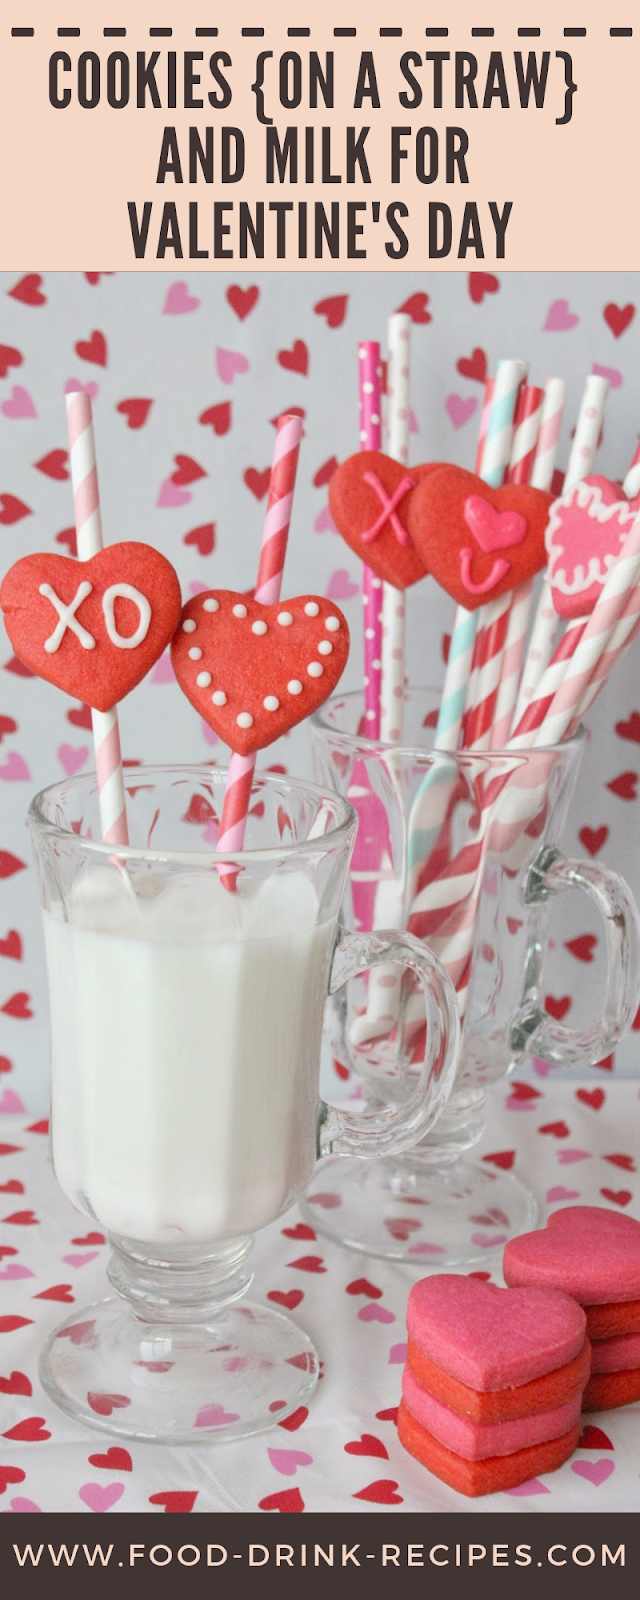 Cookies {on a straw} and Milk for Valentine's Day